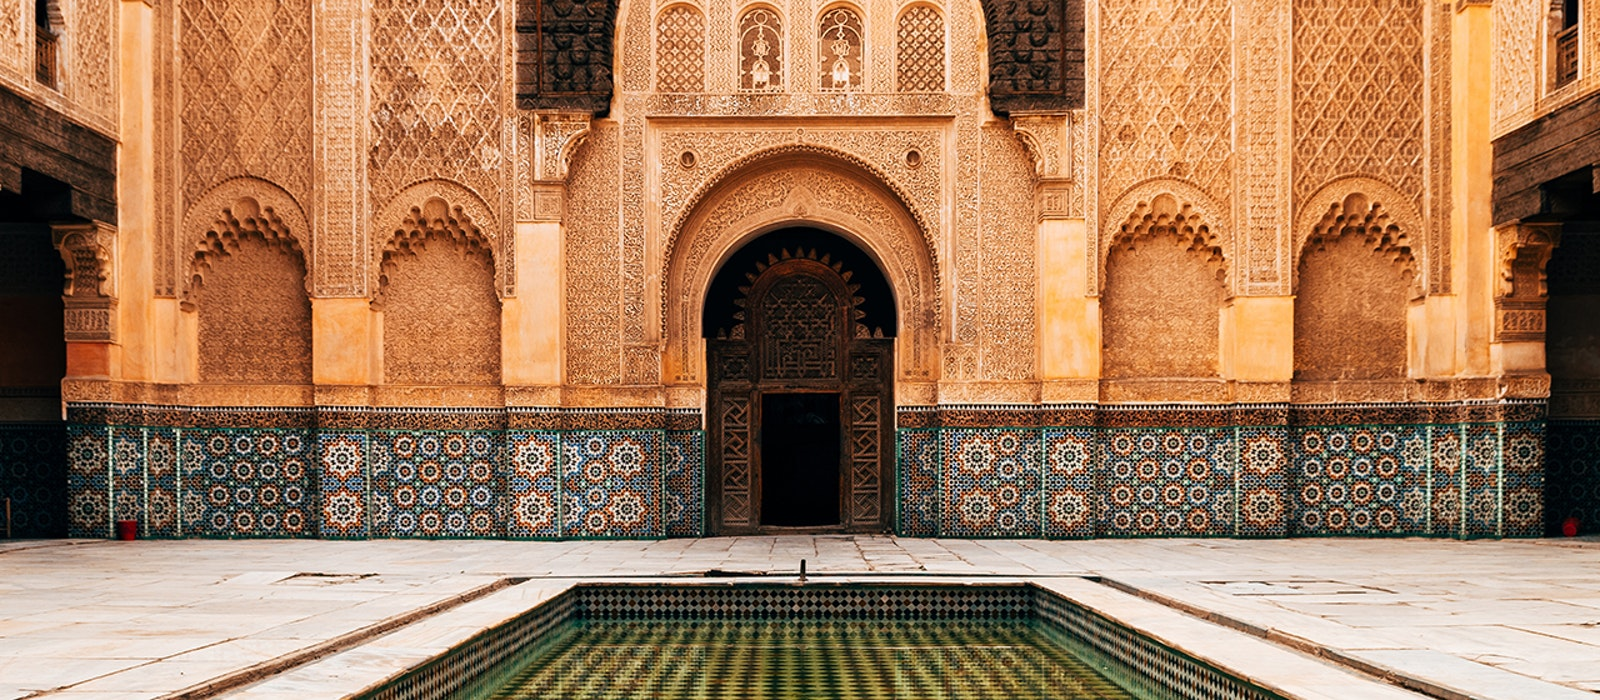 To get to the heart (and colors and scents and sounds) of Marrakech, wander the market square, gardens, and medina.